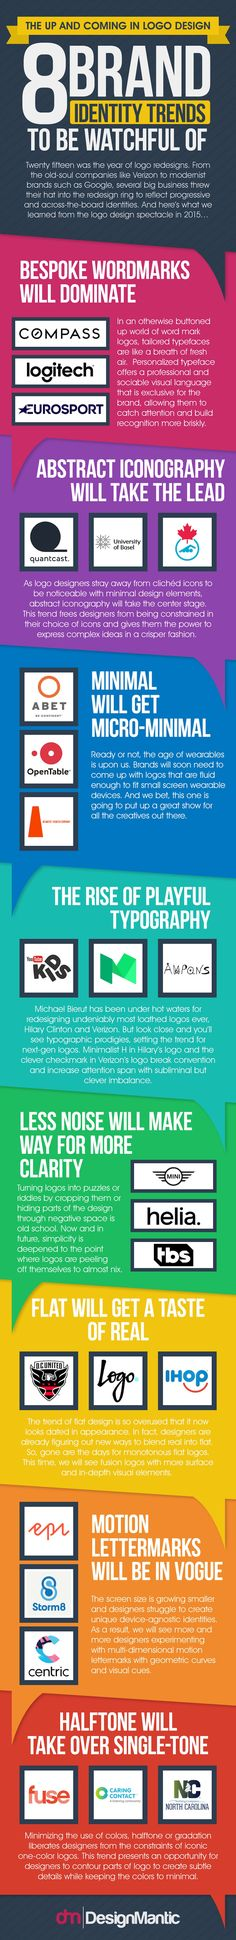 8 Interesting Logo Design Trends to Watch For   #infographic via @HubSpot